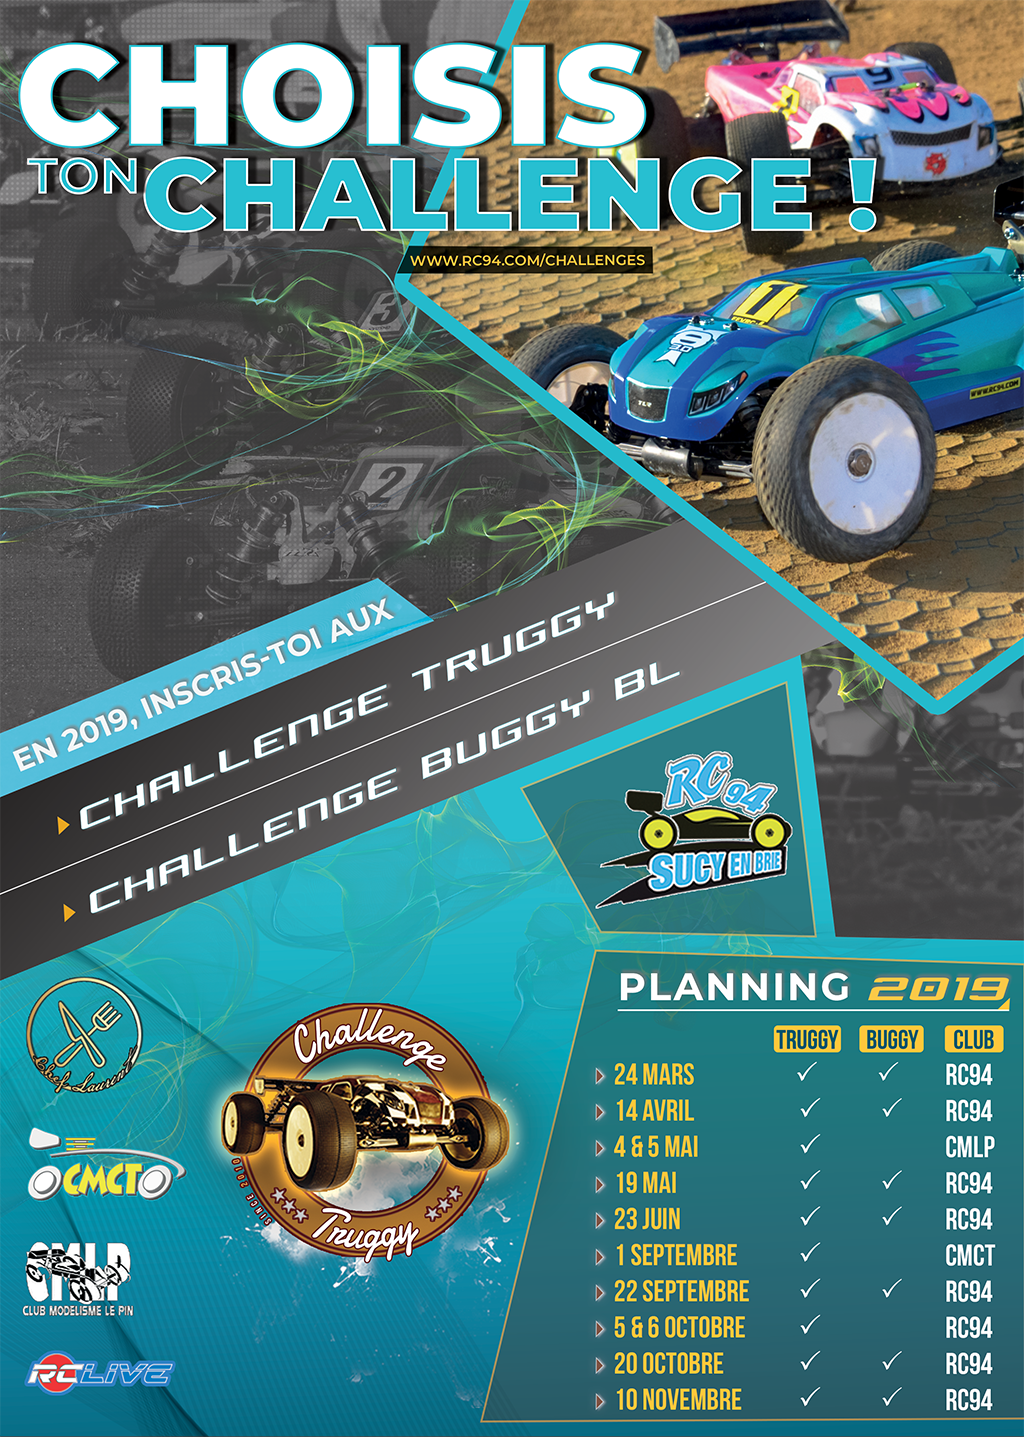 [19/05/19] : Challenges TRUGGY et BUGGY BL #4 Flyer_CT_2019